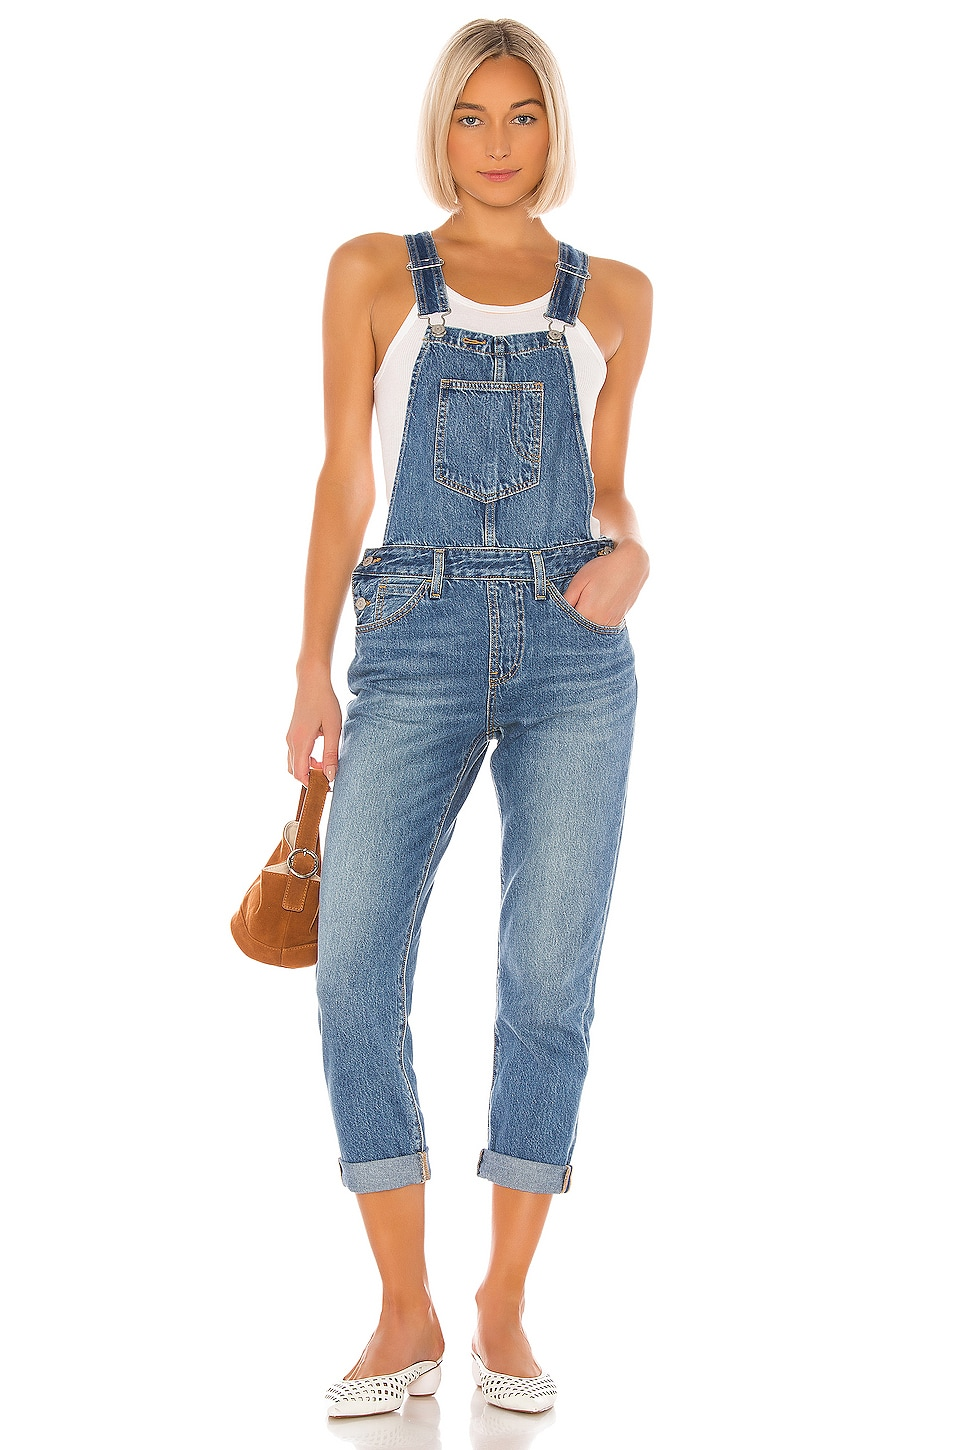 LEVI'S Original Overall in Bottom End